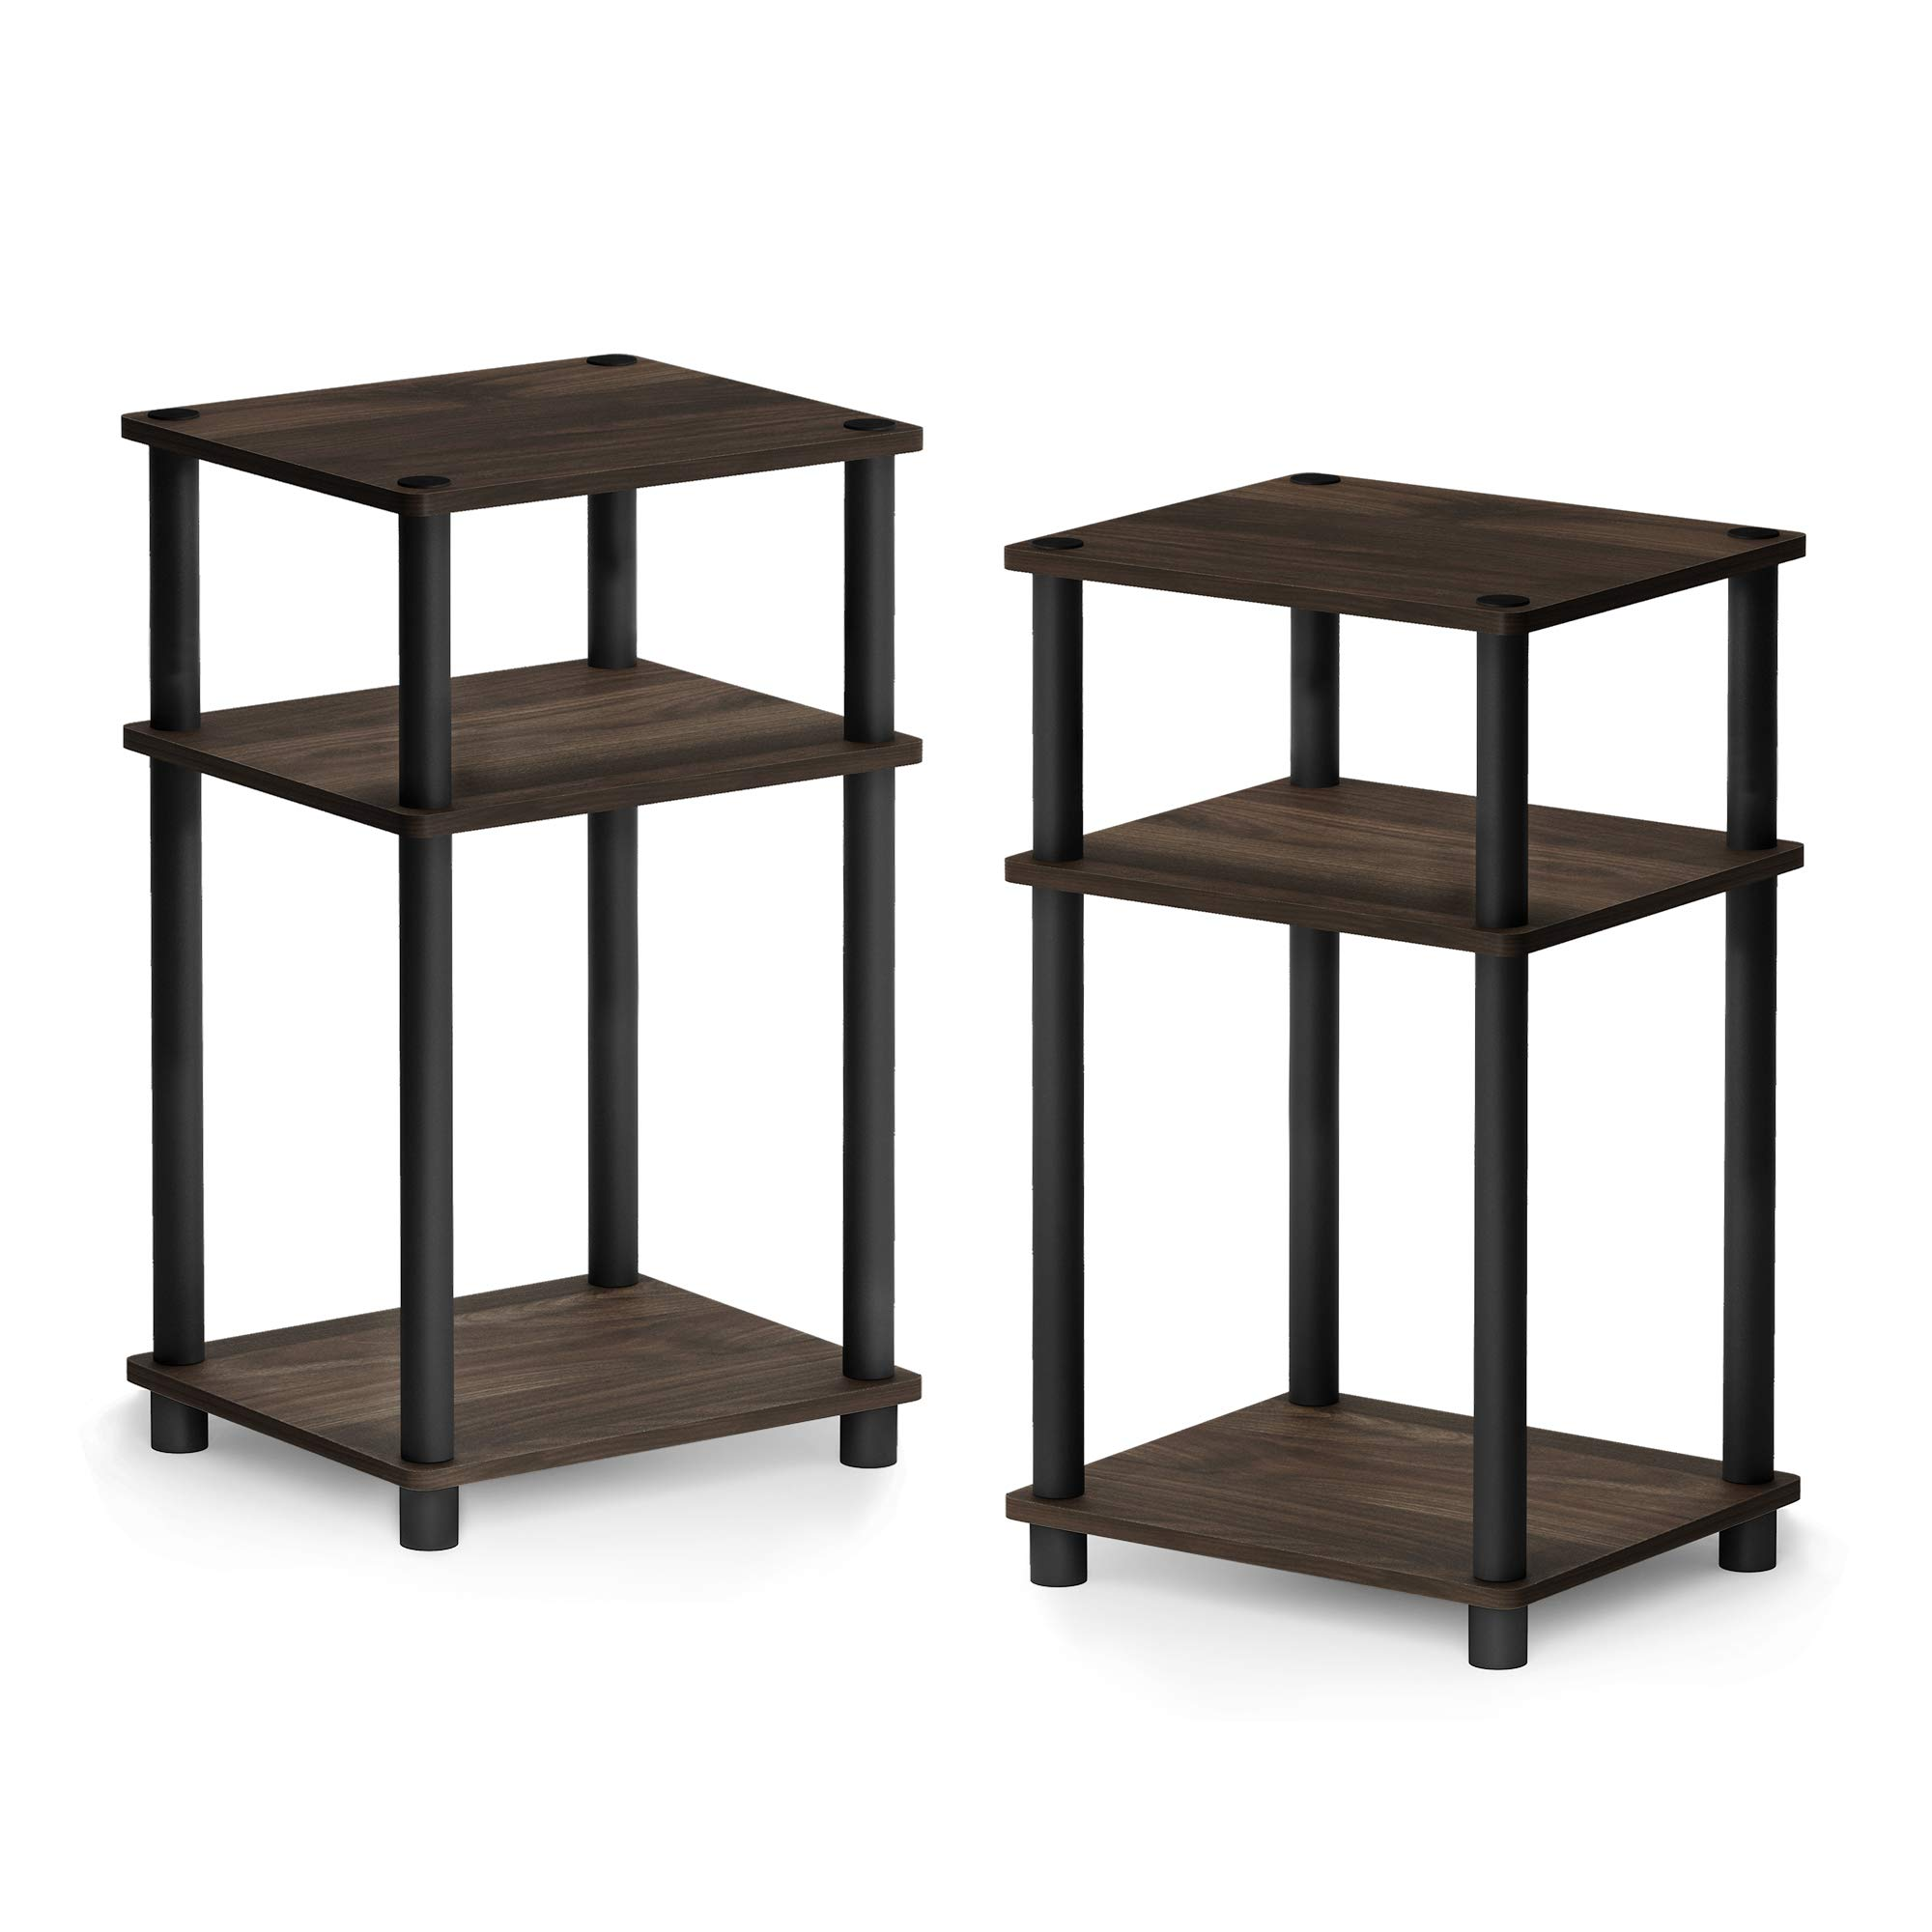 FURINNO Just 3-Tier Turn-N-Tube 2-Pack End Table, Columbia Walnut/Black by Furinno